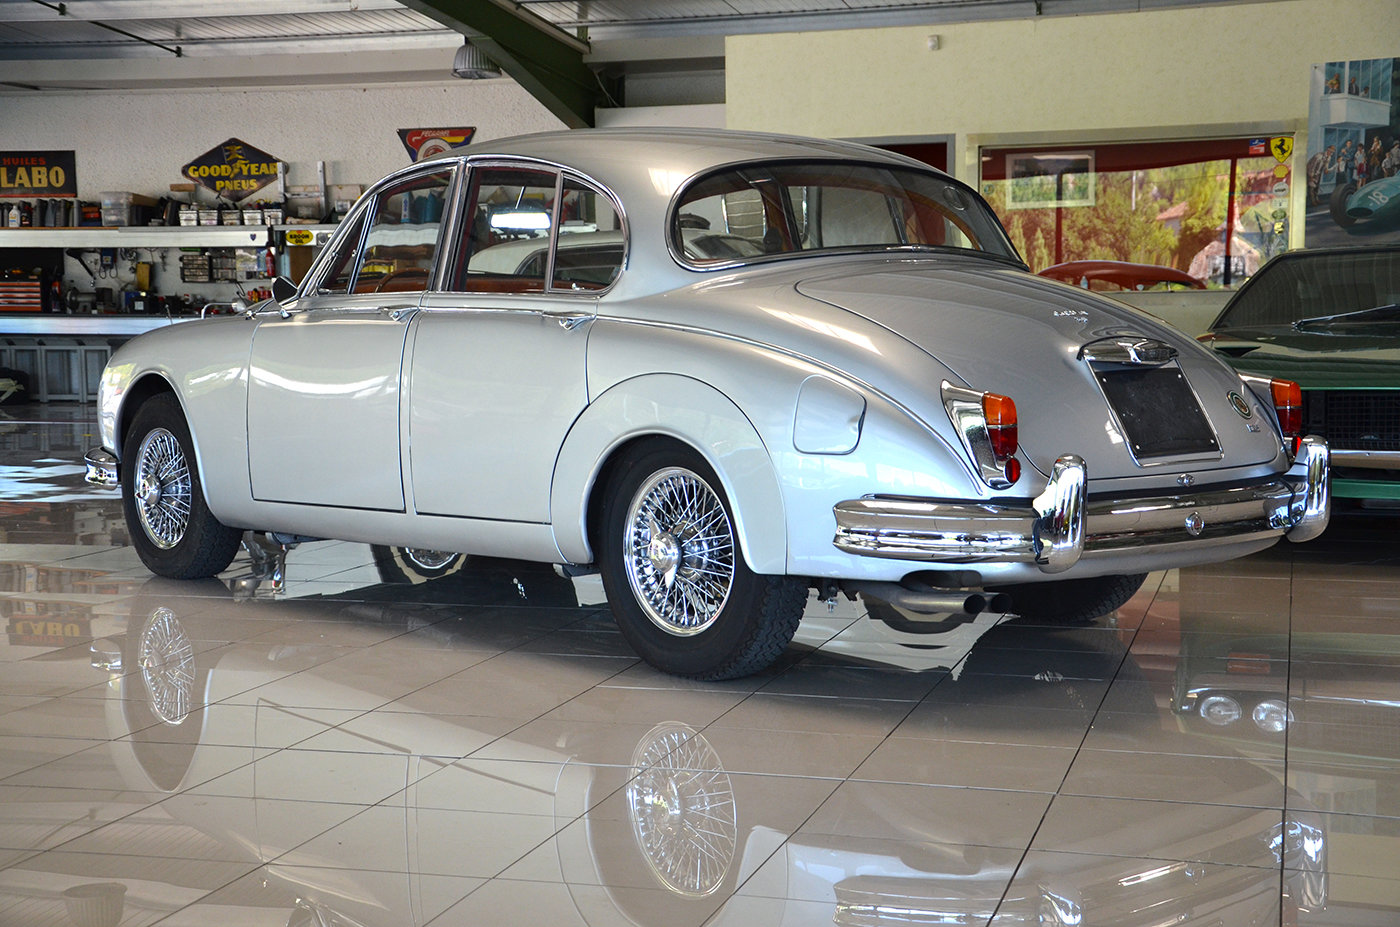 1960 Jaguar MK II 3.8 L - LHD - Top condition For Sale (picture 2 of 6)